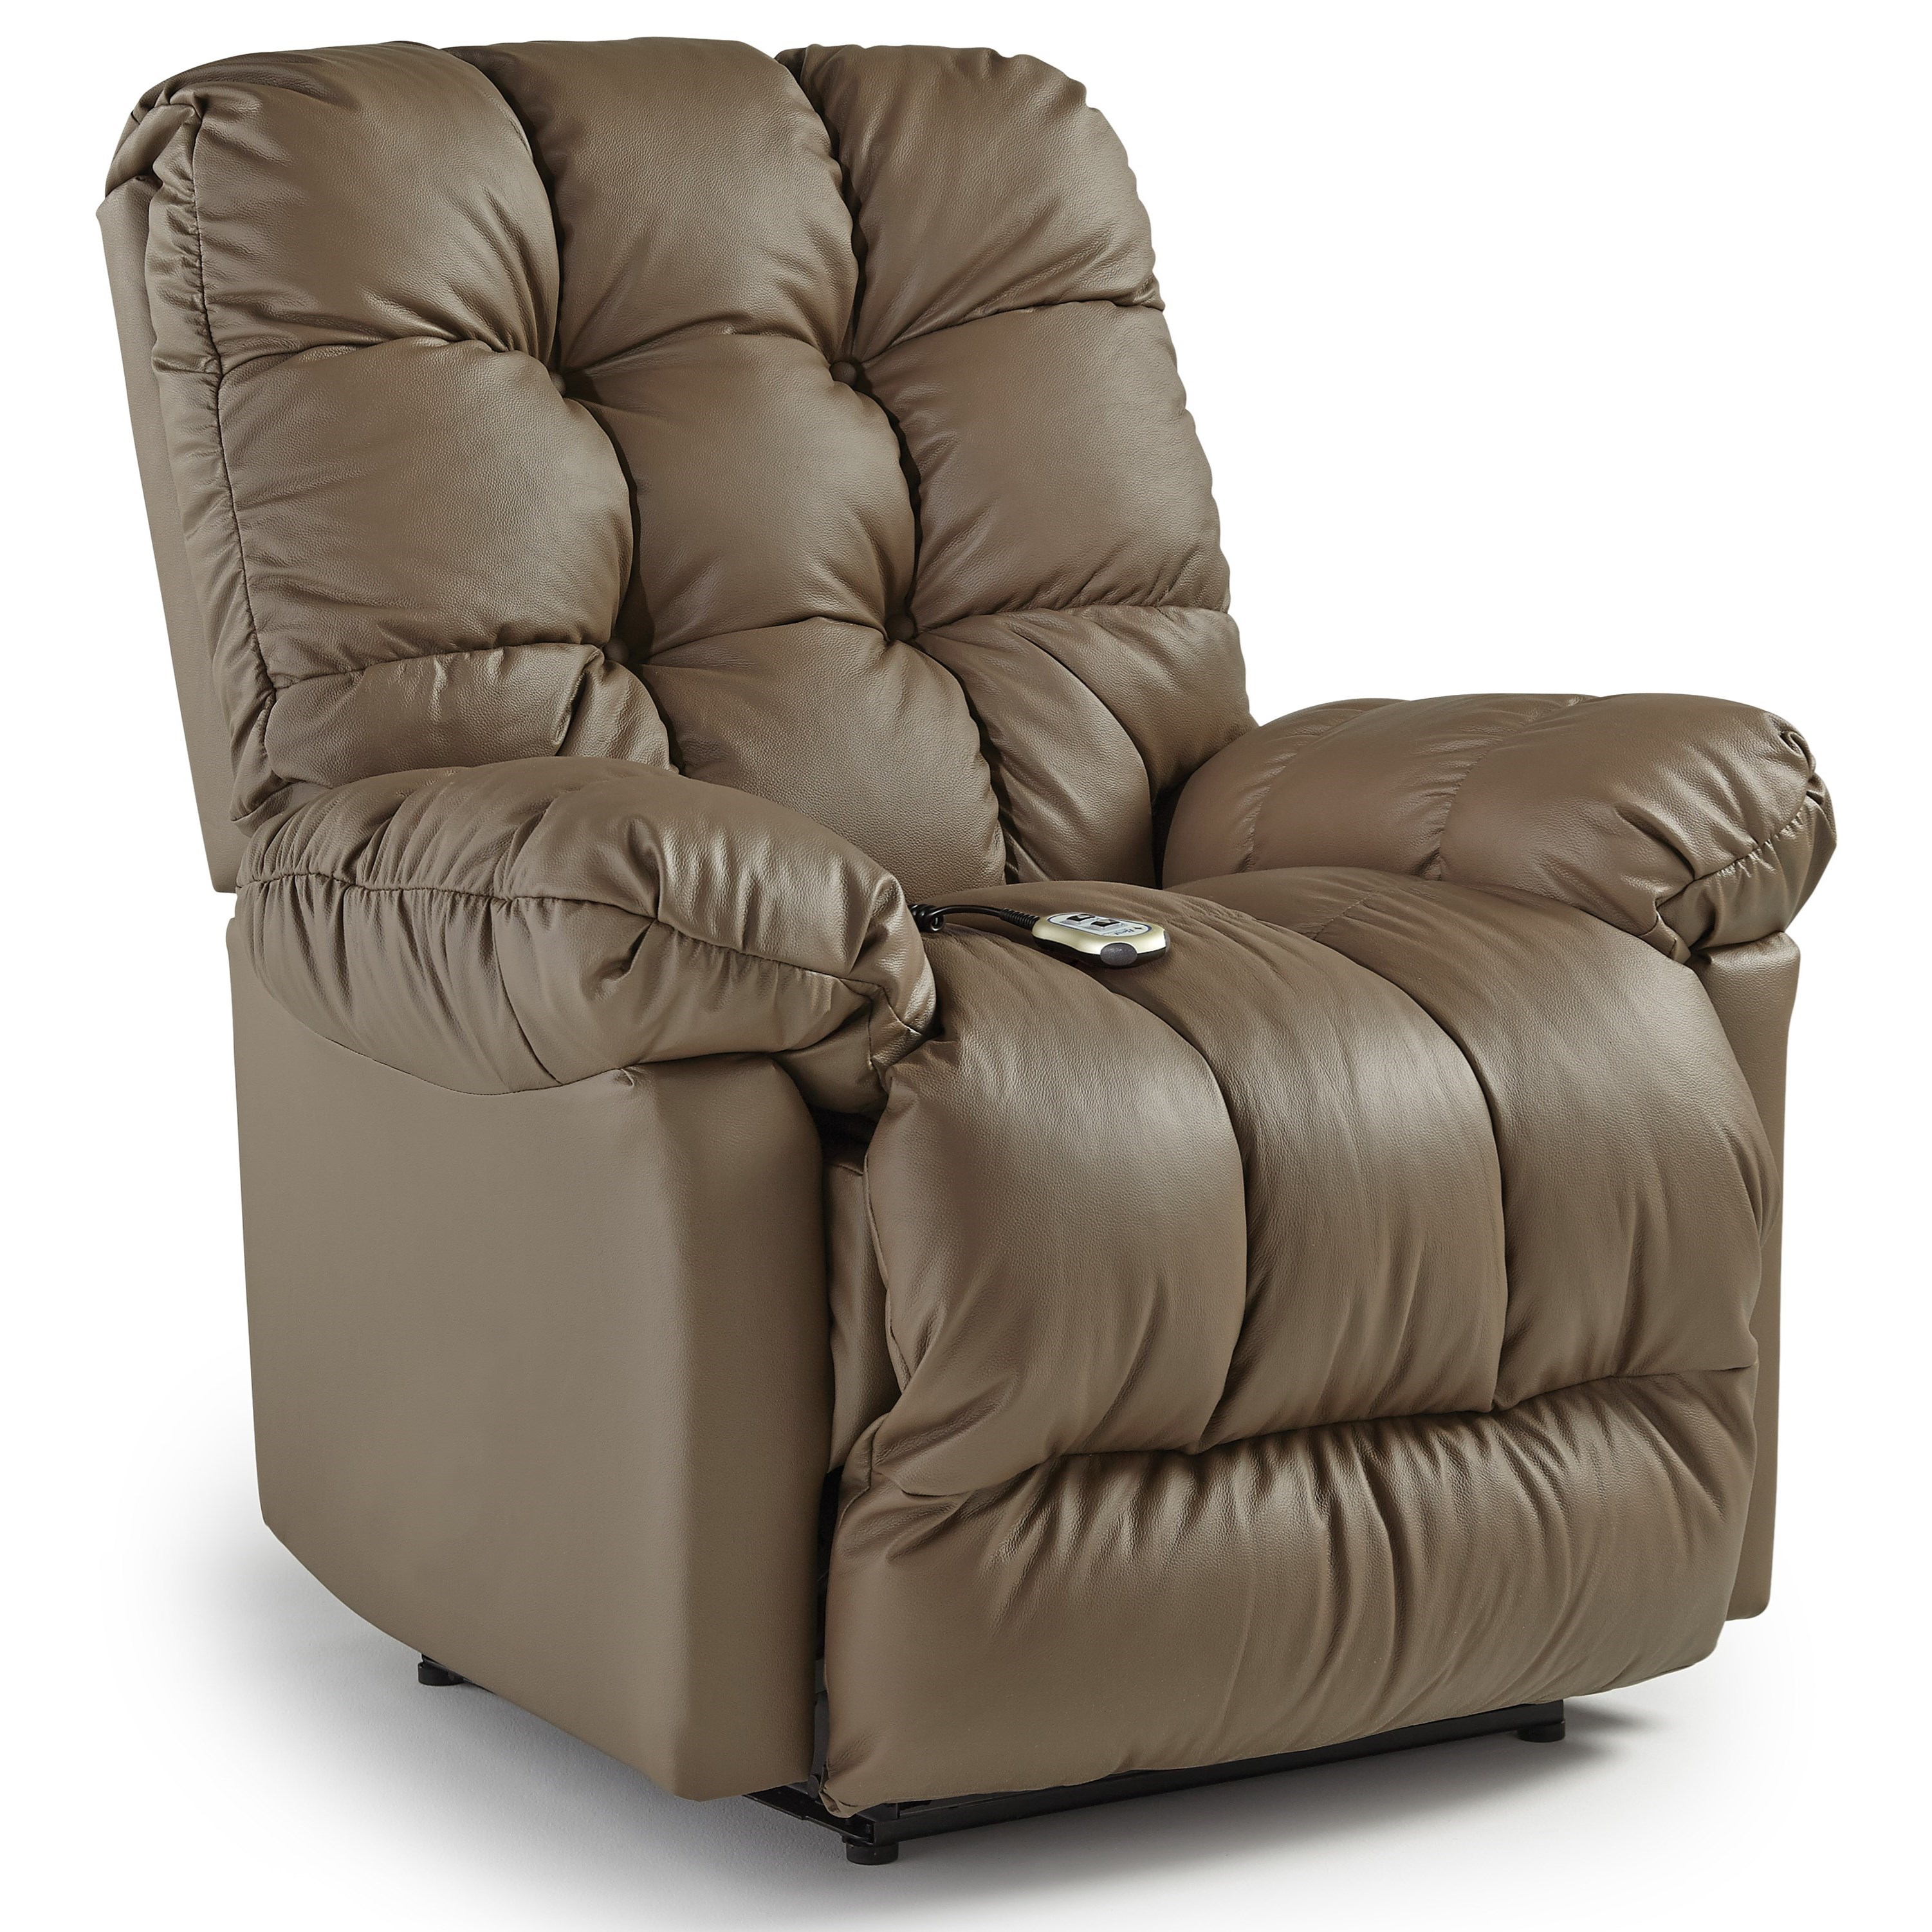 Best Home Furnishings Recliners - Medium Brosmer Power Lift Recliner - Item Number: 9MW81-1LV